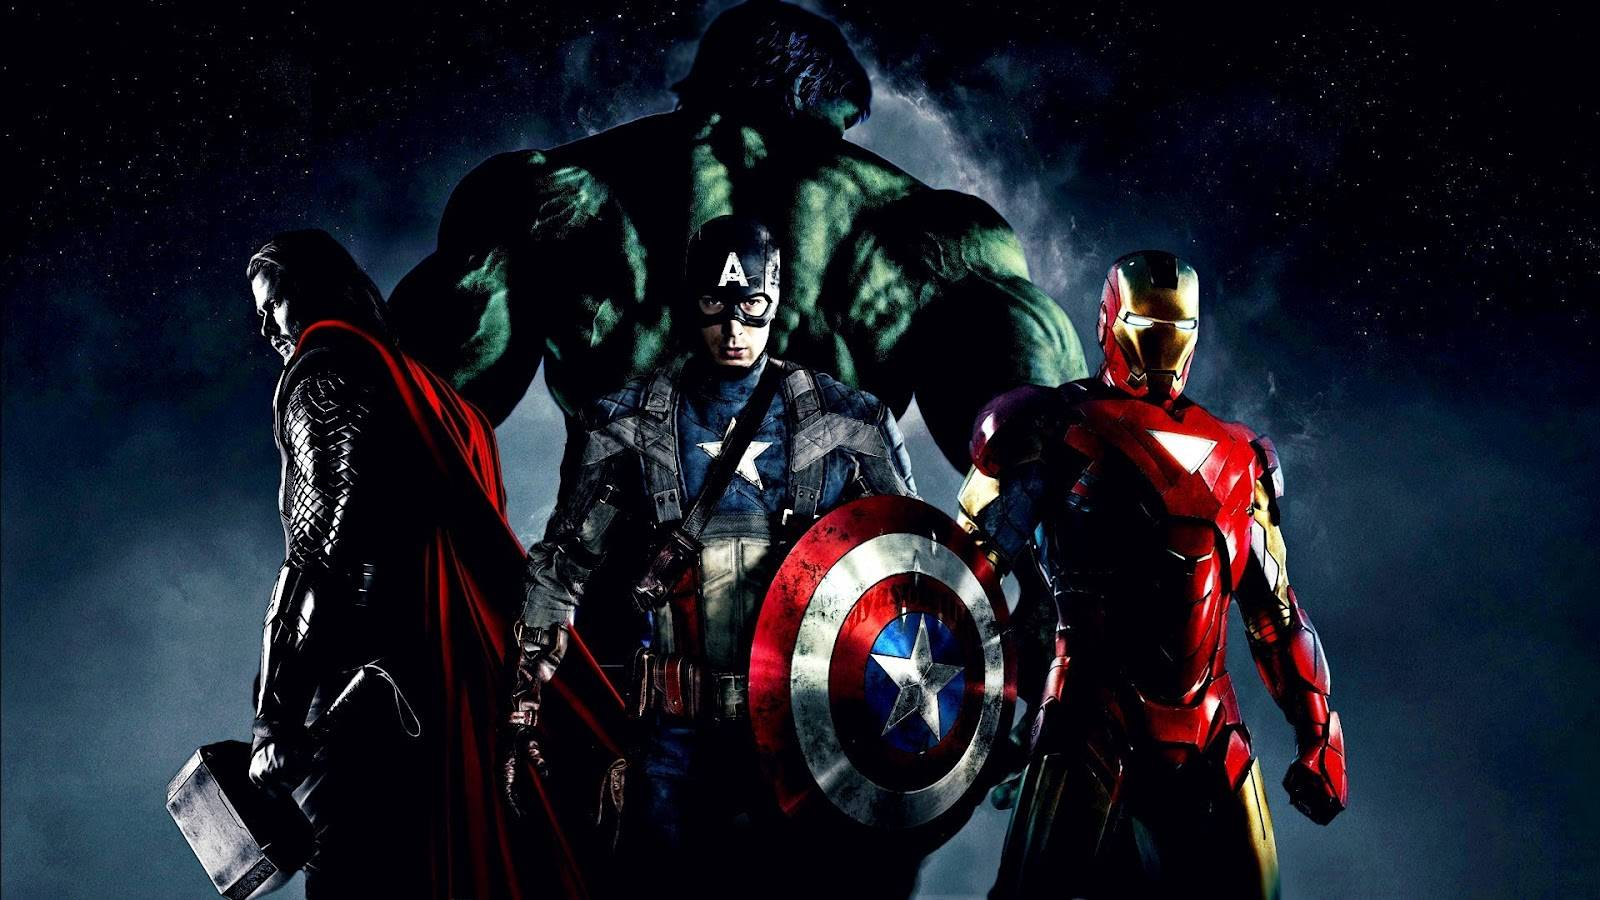 Computer Hd Avengers Wallpapers Wallpaper Cave